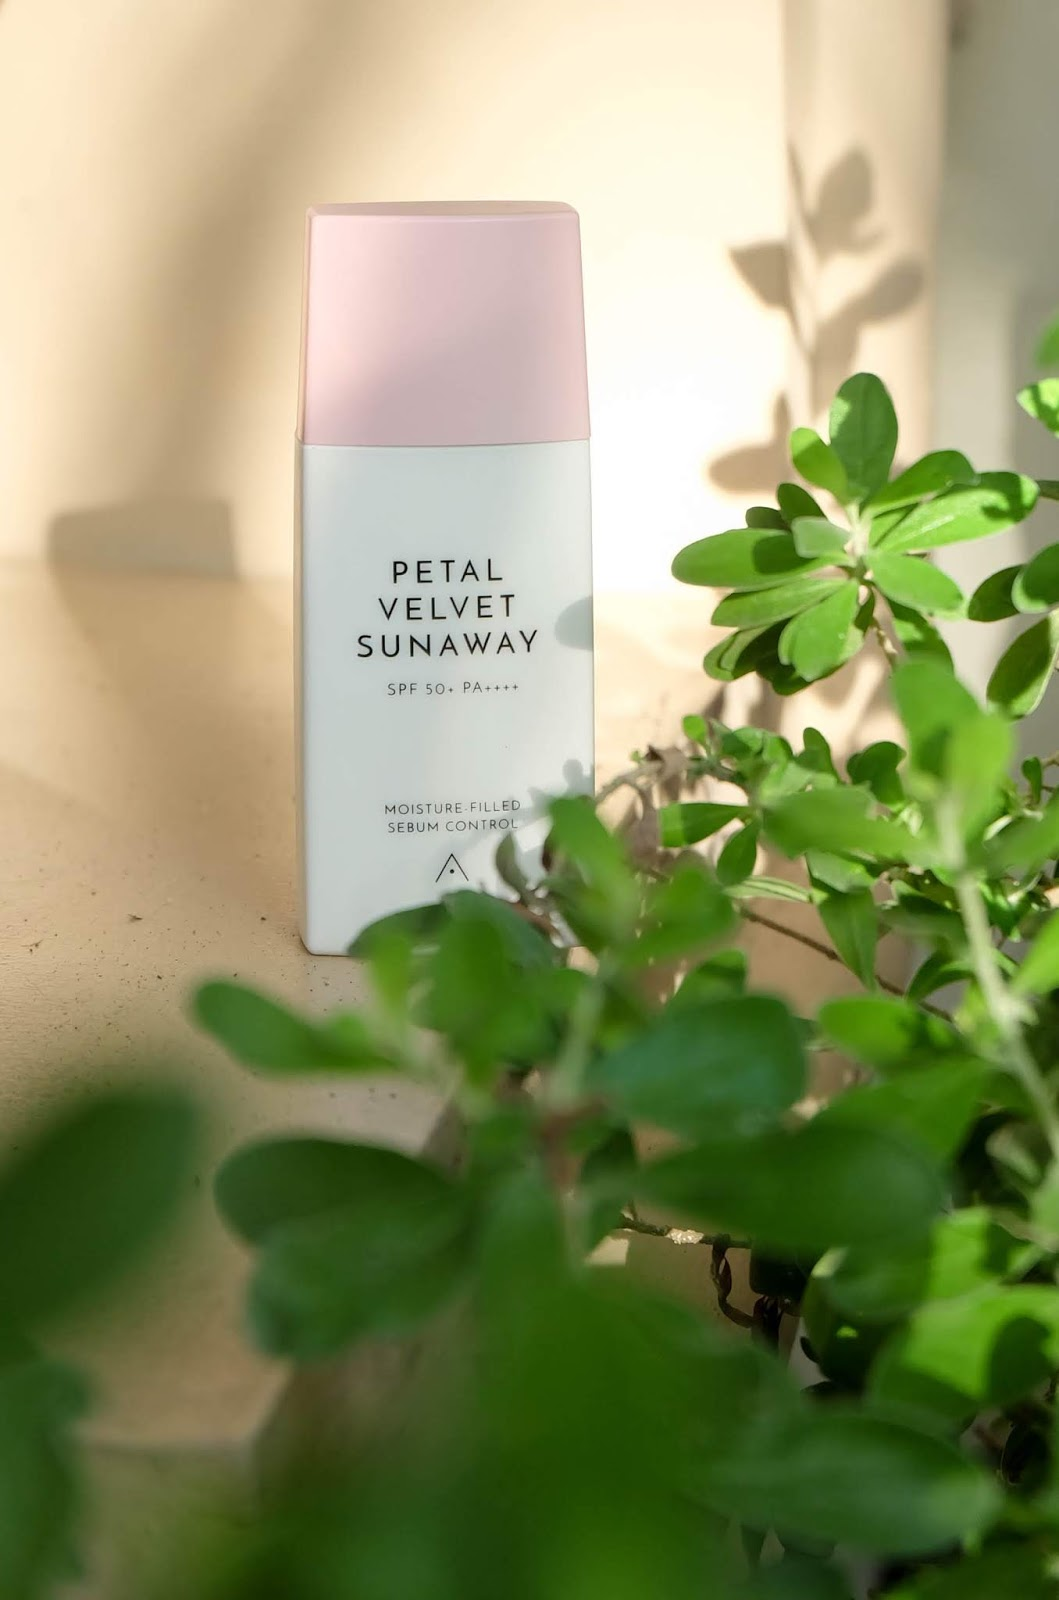 The Diary Queen: Petal Velvet Sunaway review